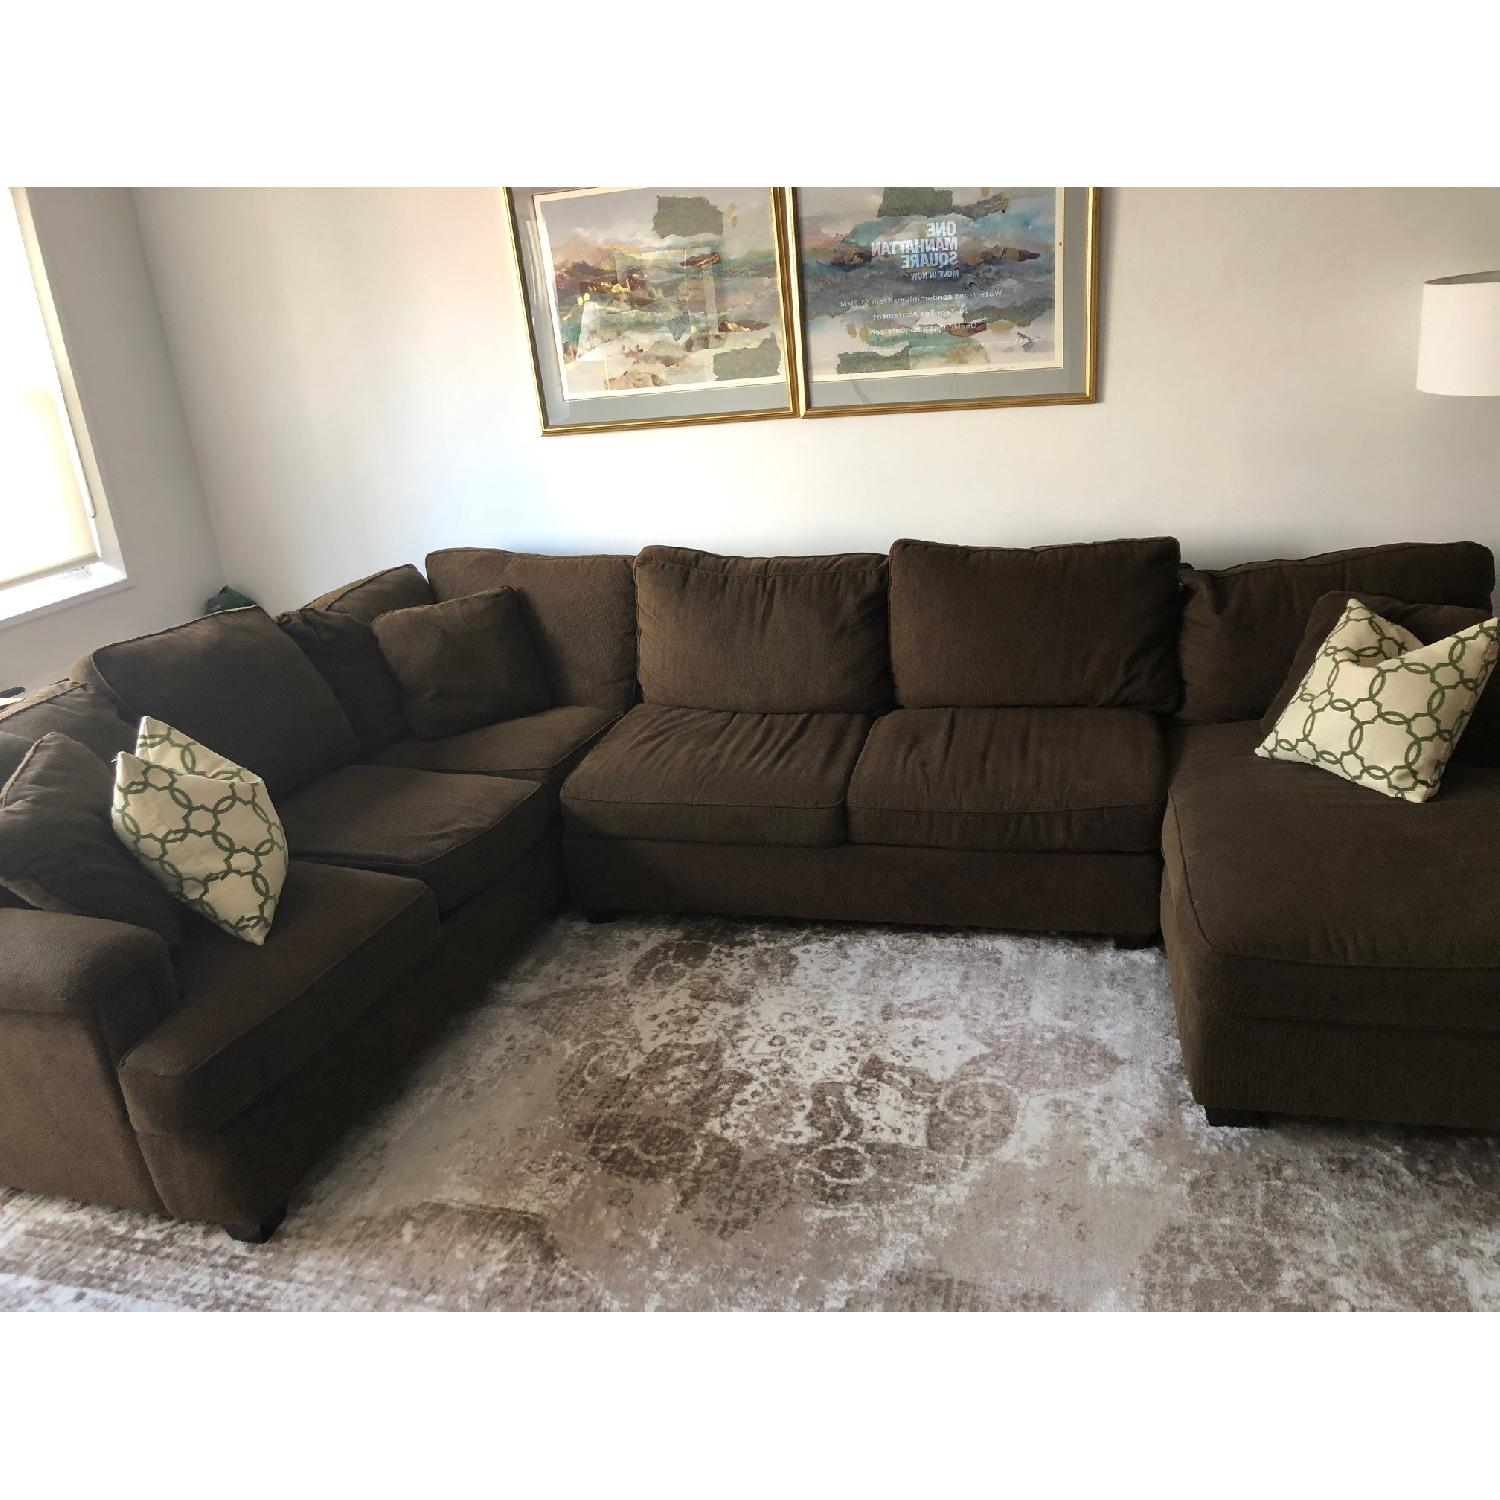 ... Bloomingdaleu0027s Brown 3 Piece Sectional Sofa 0 ...